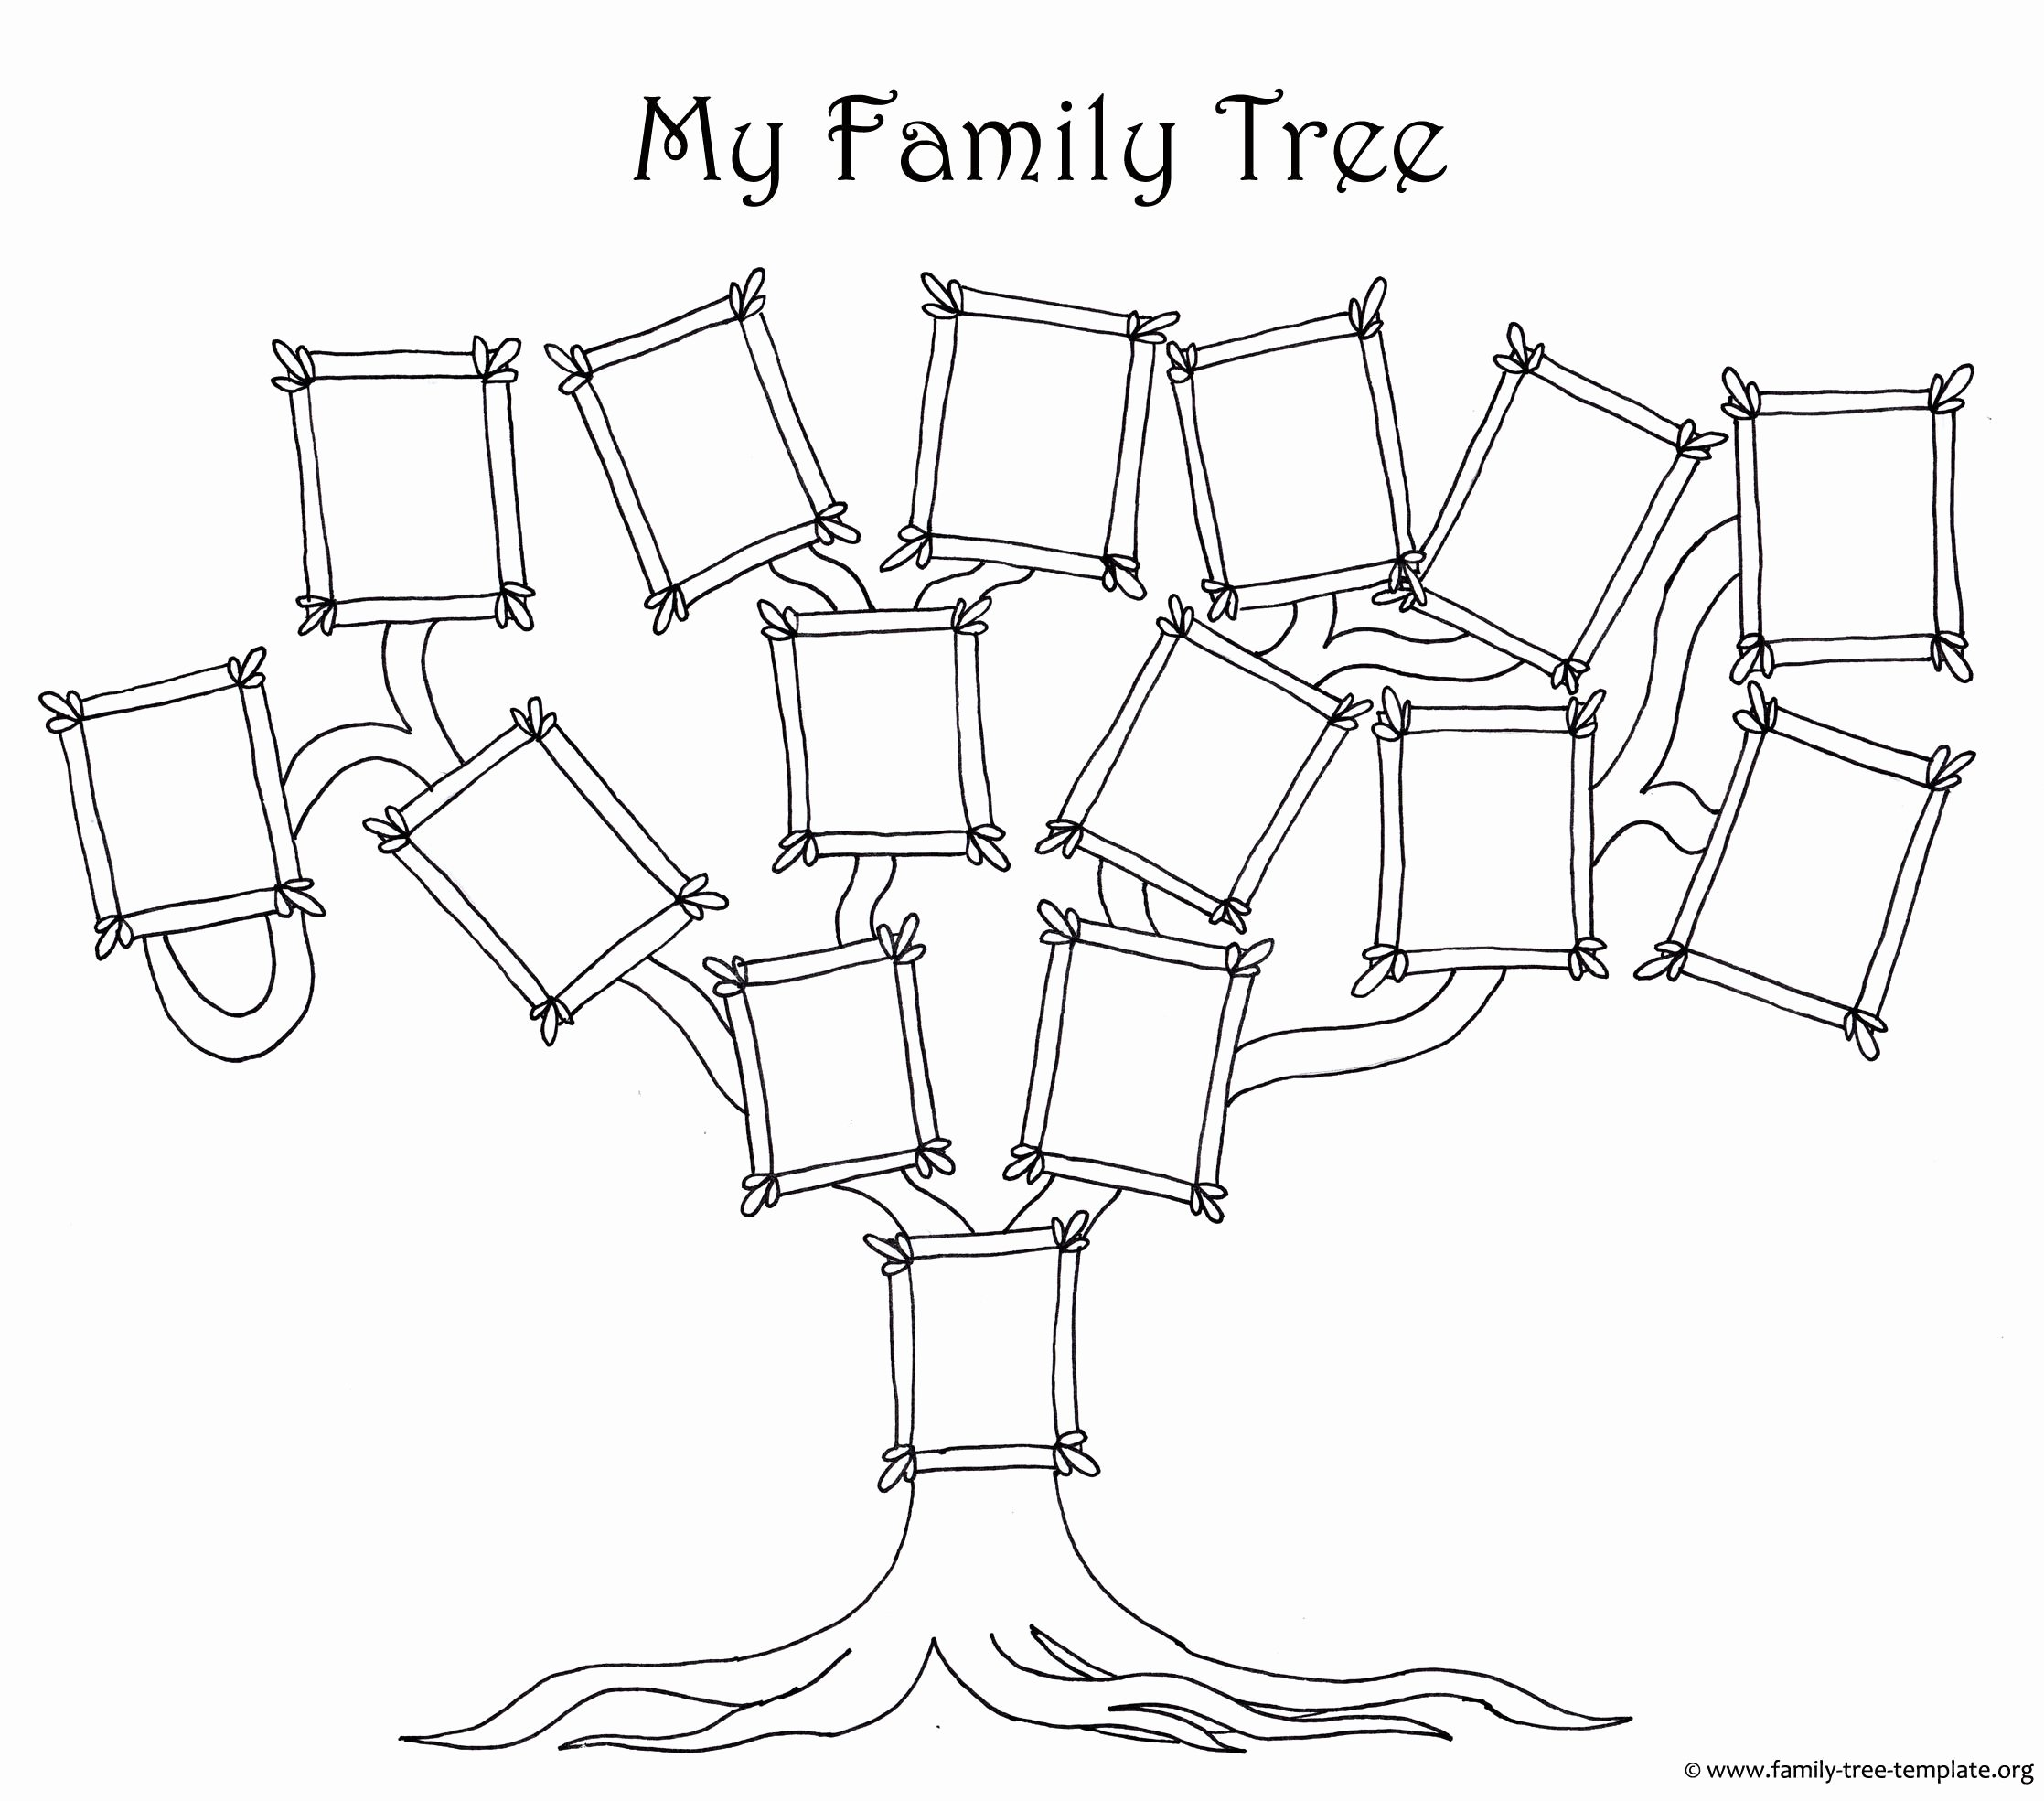 Family Tree Designs Templates New Coloring Page for Kids A Simple Fun Family Tree Chart